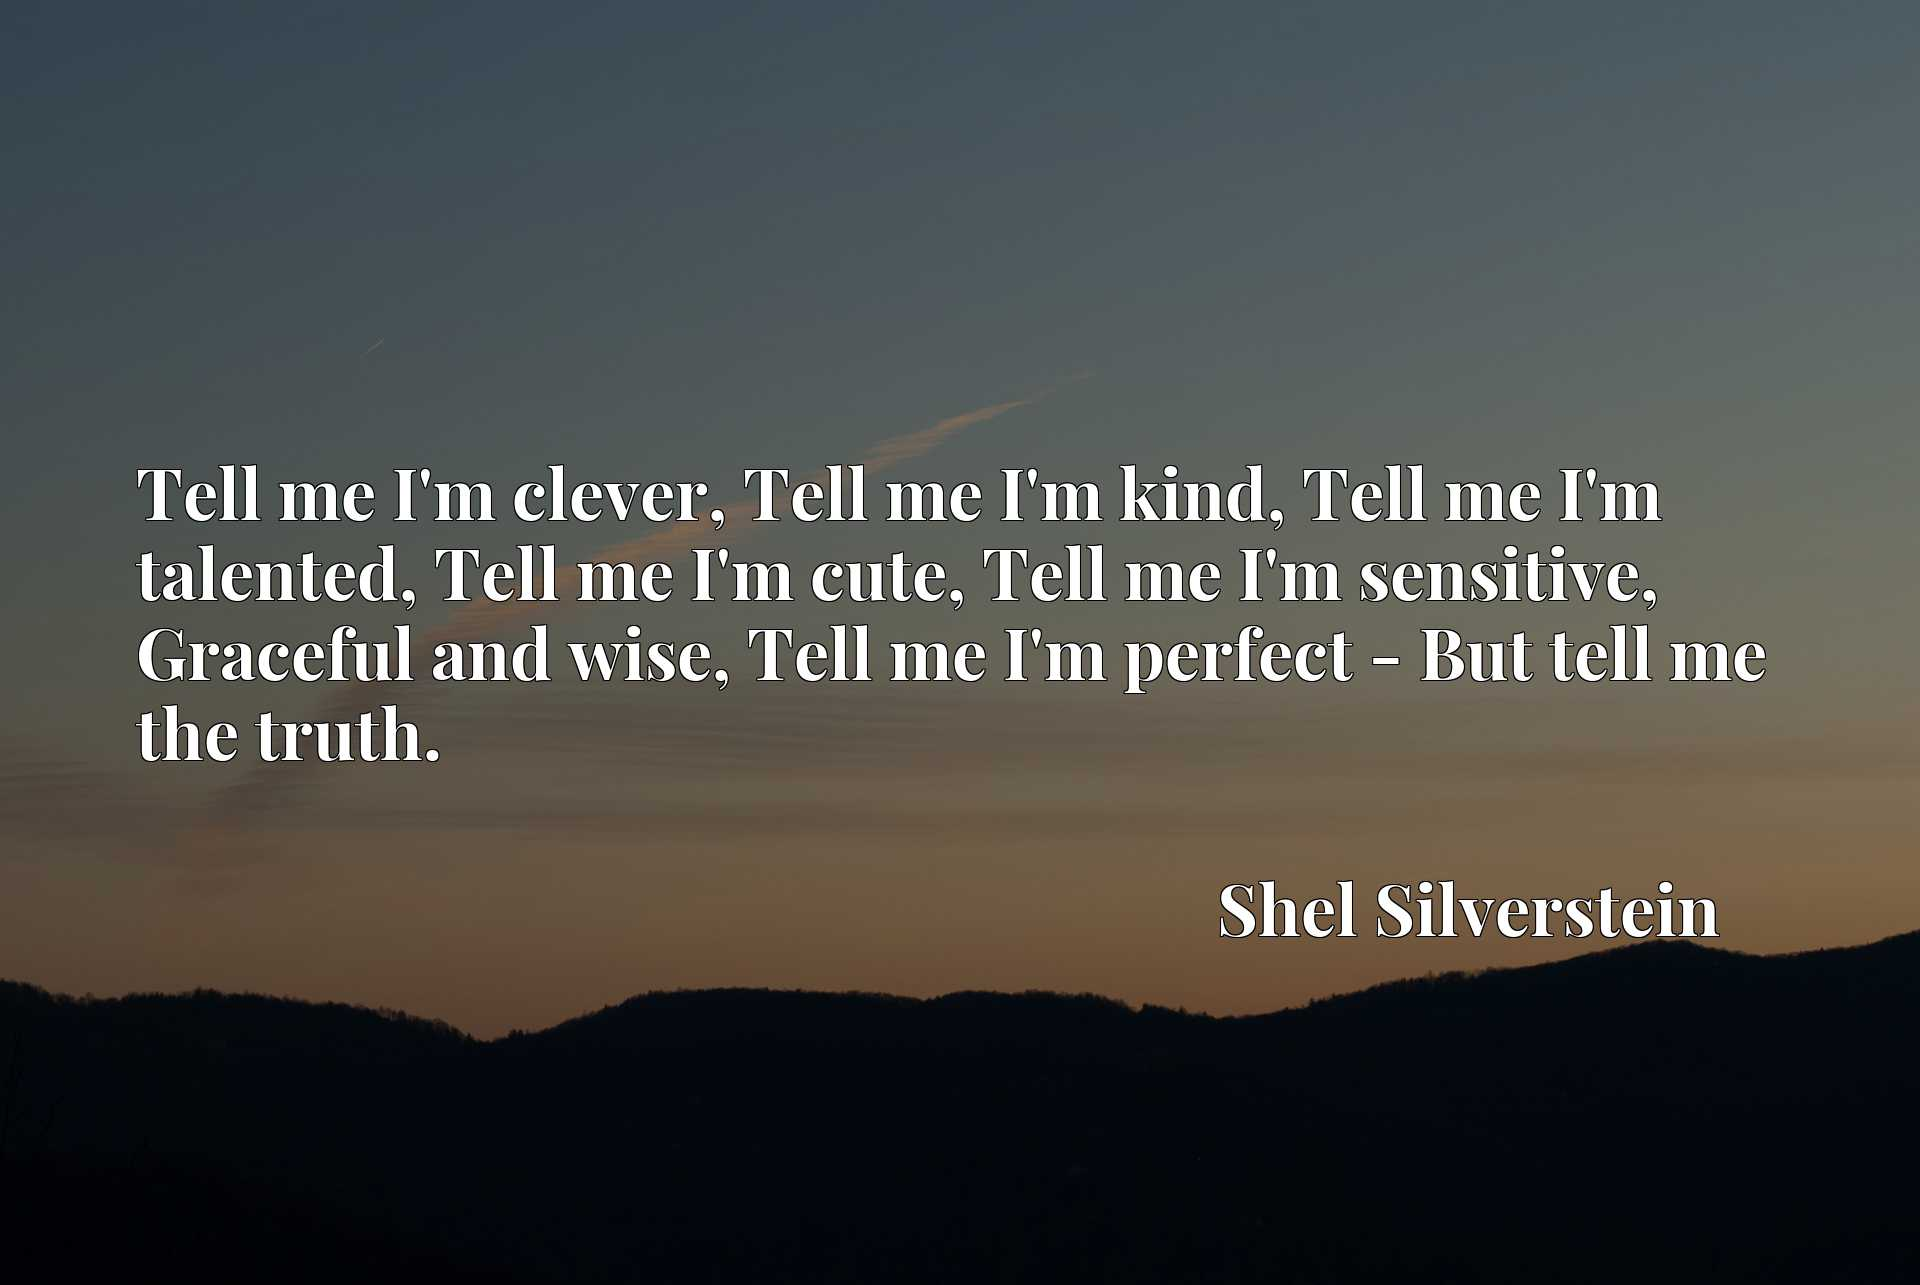 Tell me I'm clever, Tell me I'm kind, Tell me I'm talented, Tell me I'm cute, Tell me I'm sensitive, Graceful and wise, Tell me I'm perfect - But tell me the truth.